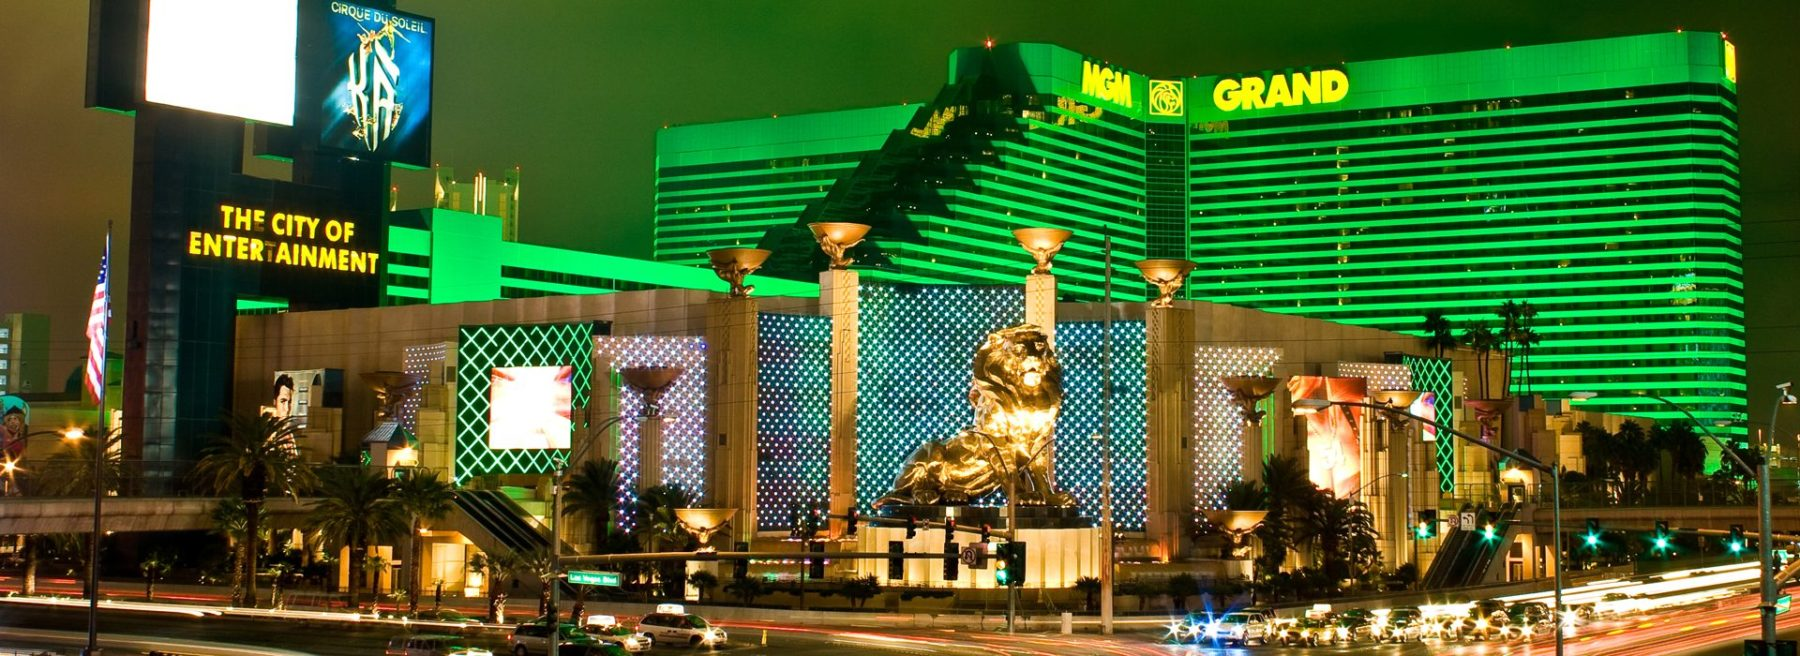 The Green Prince Casinos